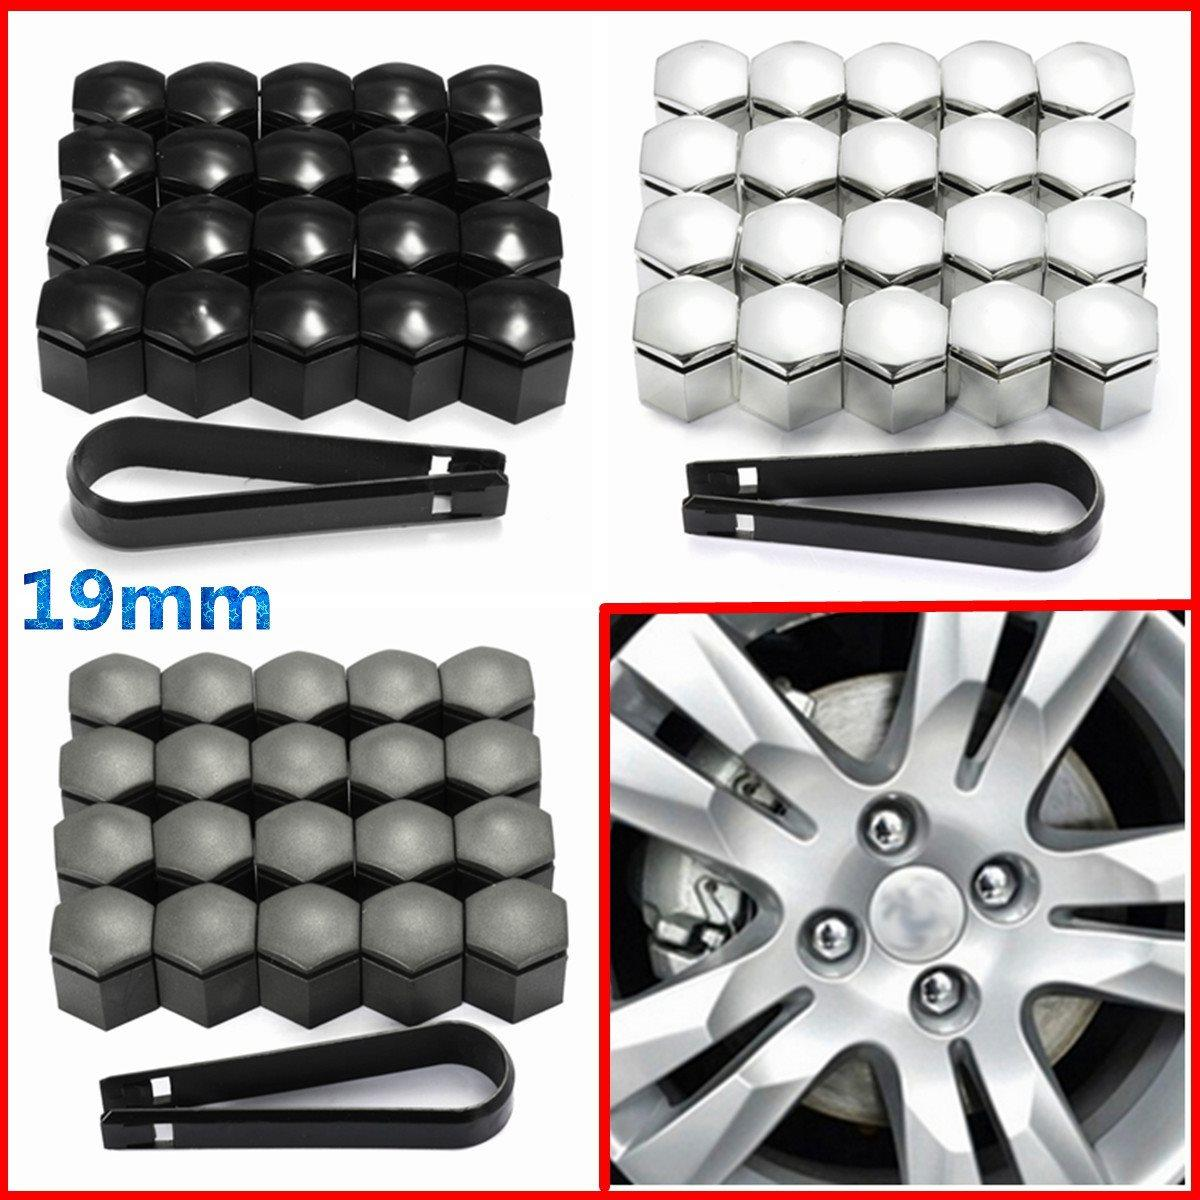 4b9e06e1f2e 2019 19mm Wheel Nut Cover Bolt Cap Protector For Vauxhall Opel Romove Tool  Key From Sara1688, $18.09 | DHgate.Com